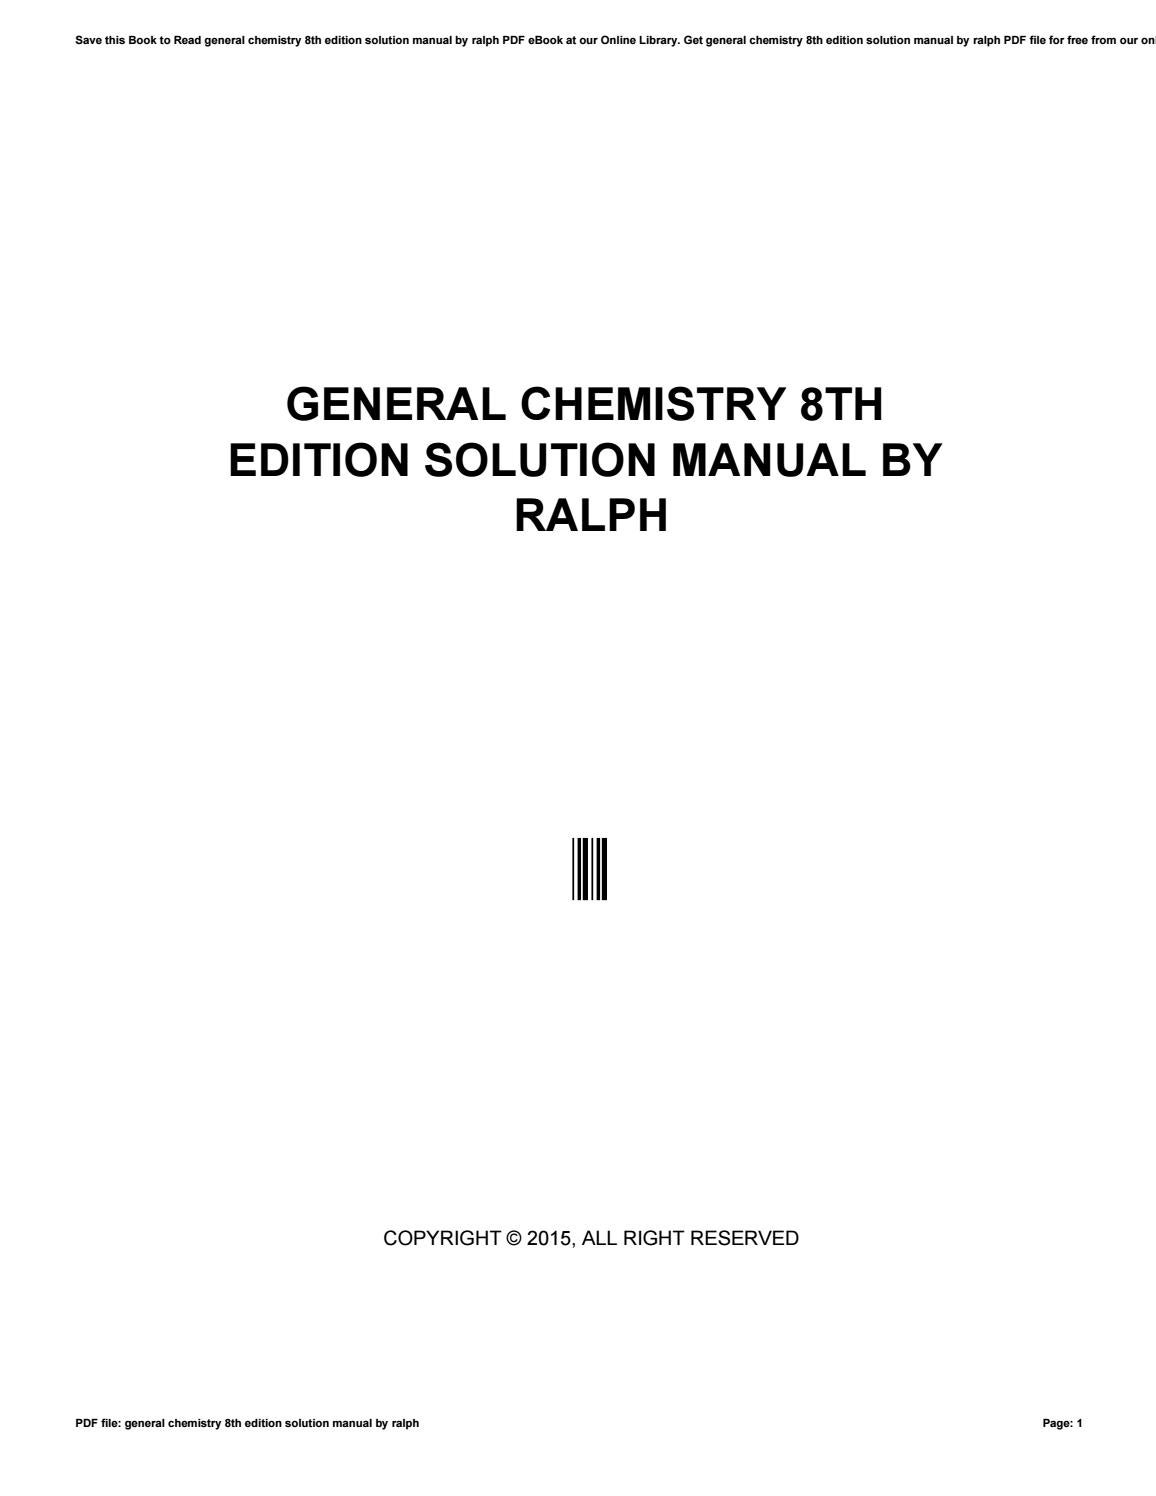 General chemistry solution manual pdf ebook array general chemistry 8th edition solution manual by ralph by rh issuu com fandeluxe Image collections